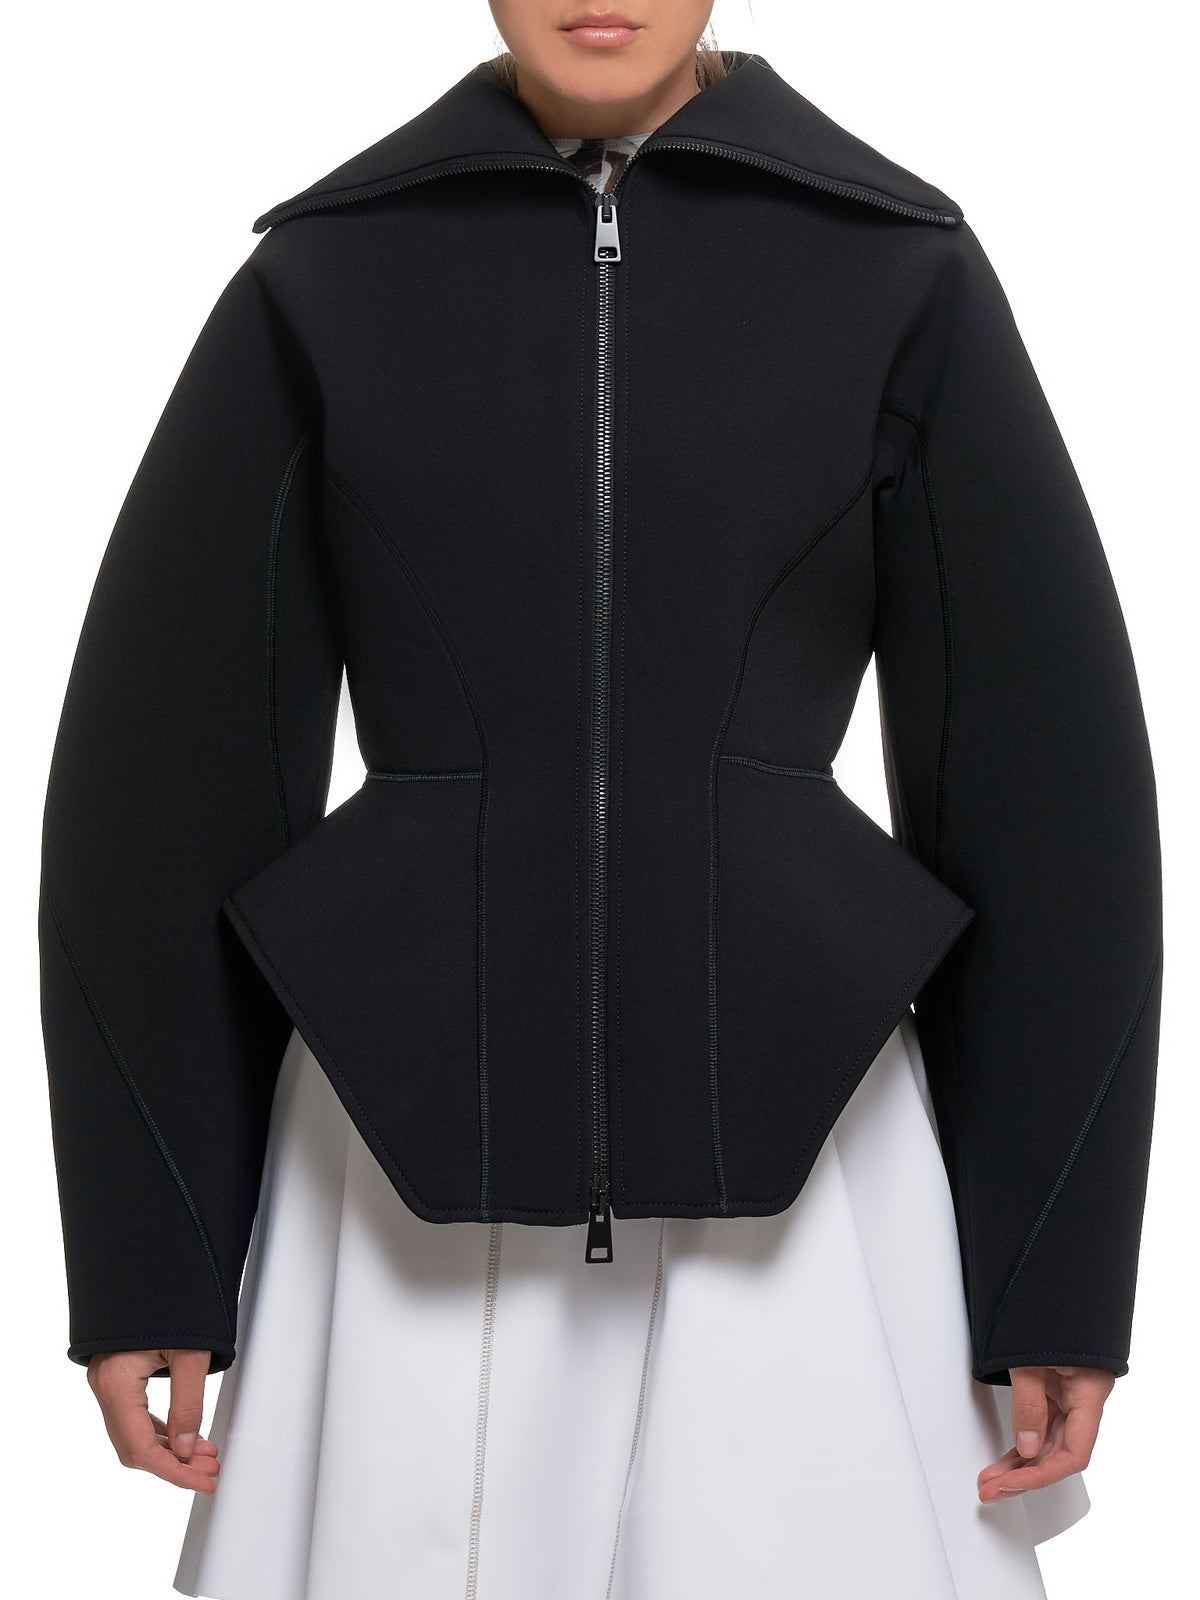 Angular Jacket (19W-1-VE0291560-BLACK)